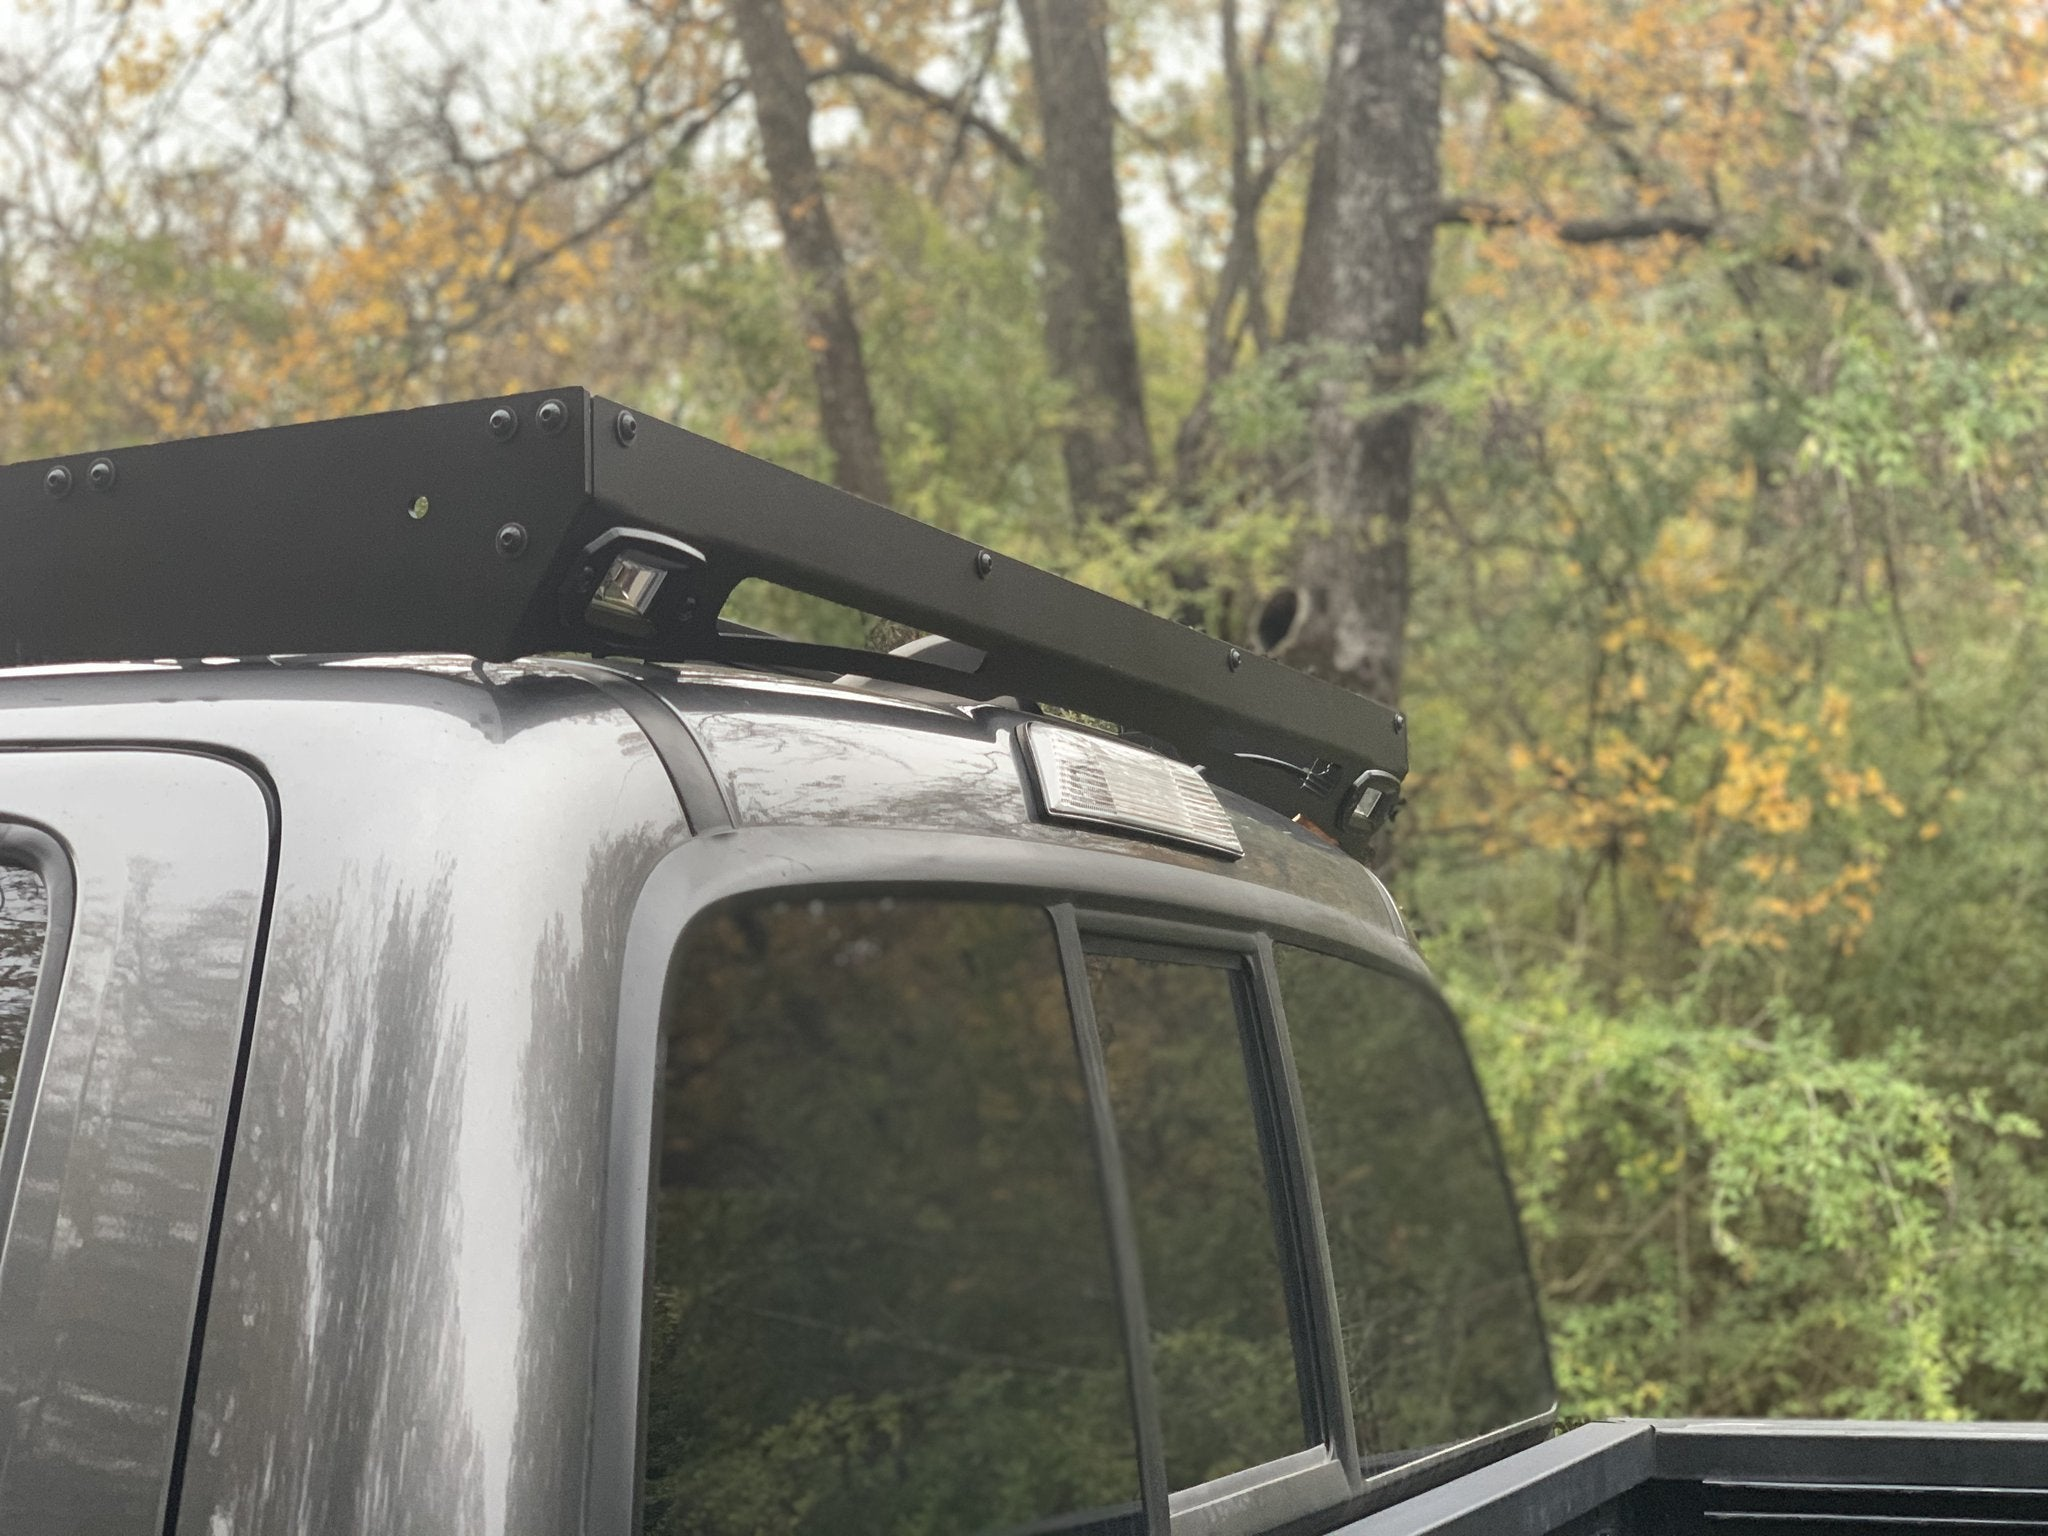 Cali Raised LED - PREMIUM ROOF RACK - Toyota Tacoma 2005-2021 - 4x4 Runners